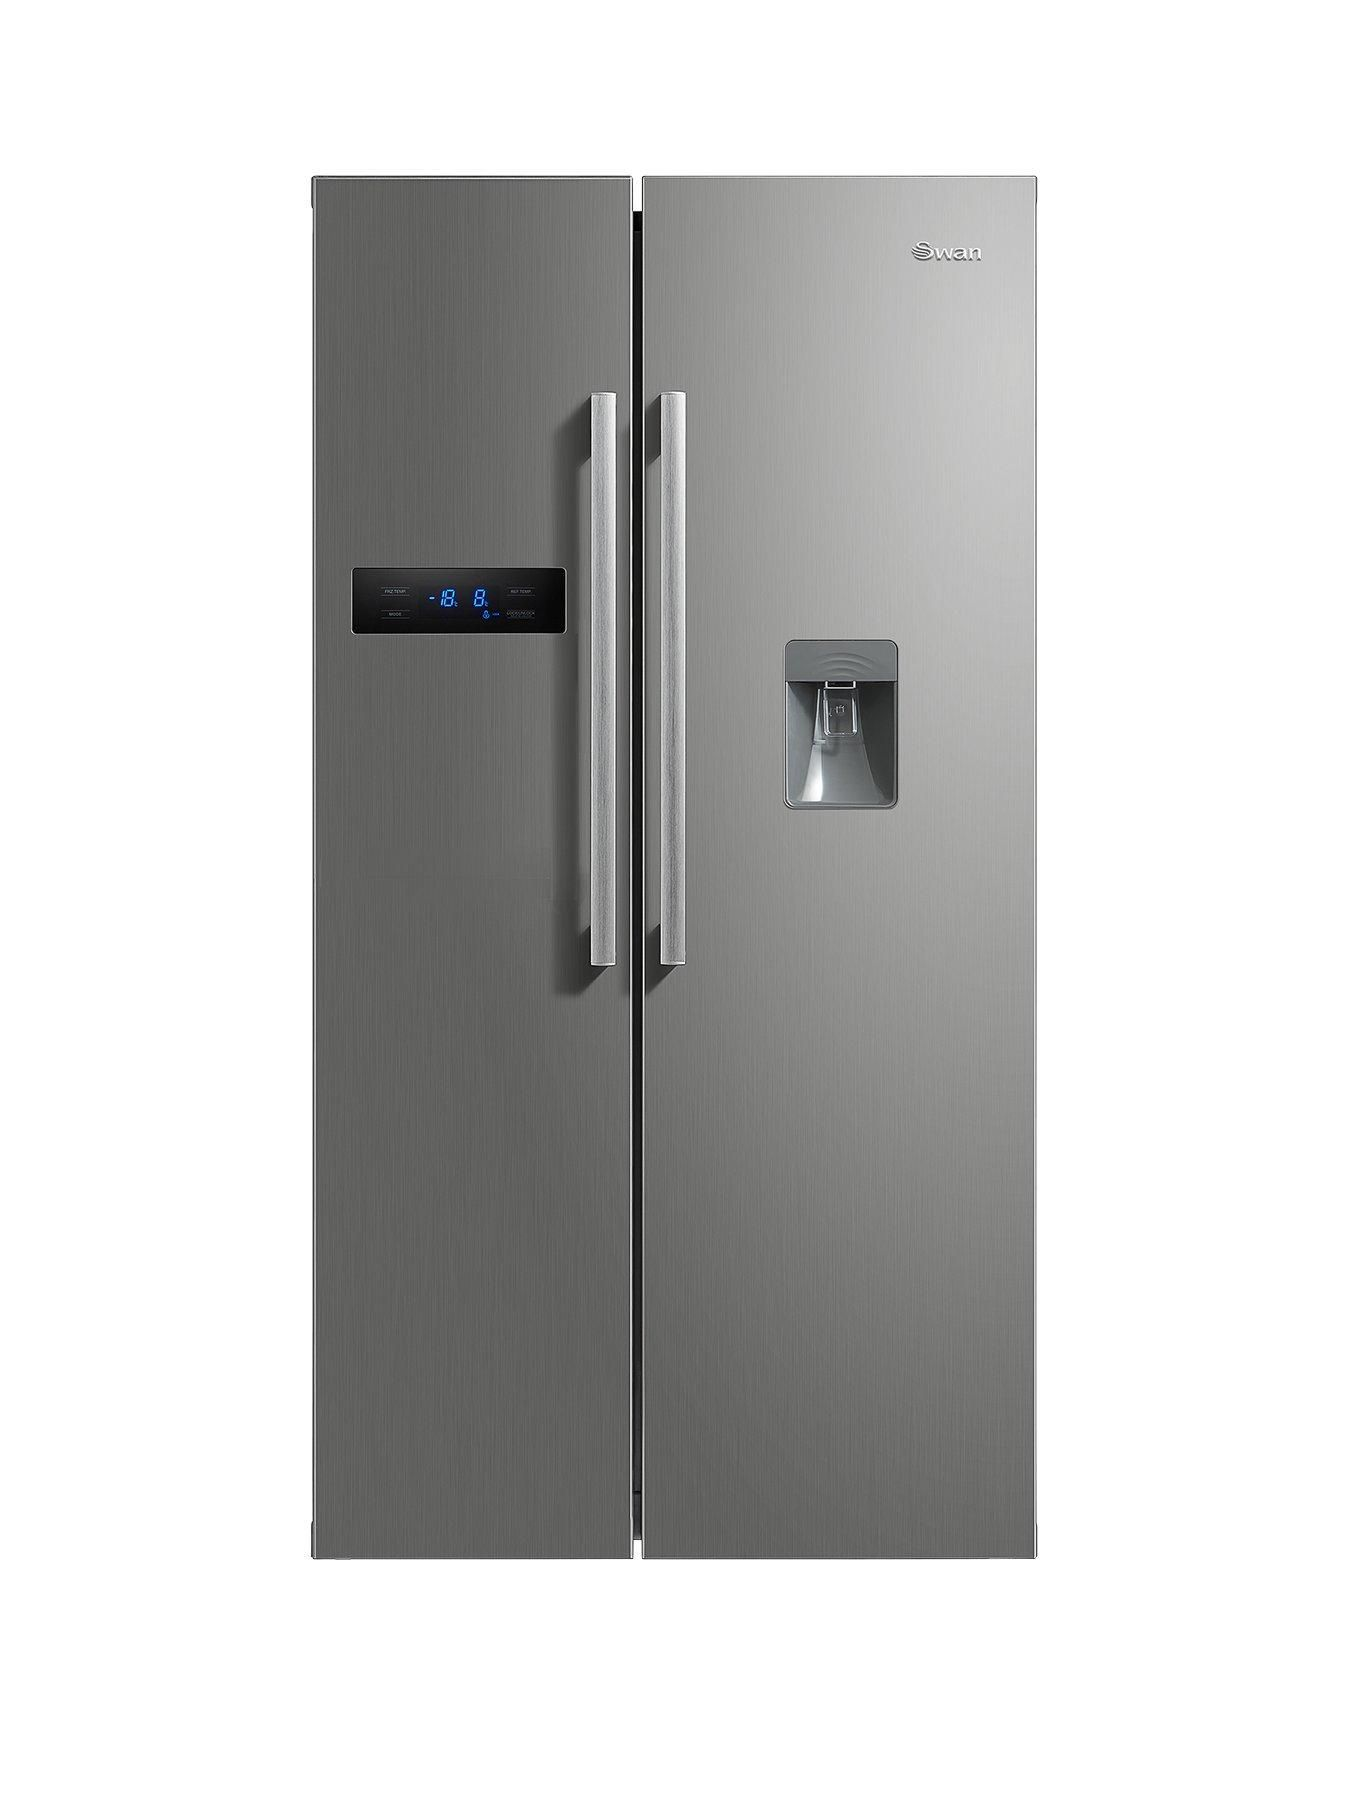 Sr70110s 89 5cm American Style Double Door Frost Free Fridge Freezer With Water Dispenser Silver In 2020 Double Door Fridge Double Doors Glass Fridge